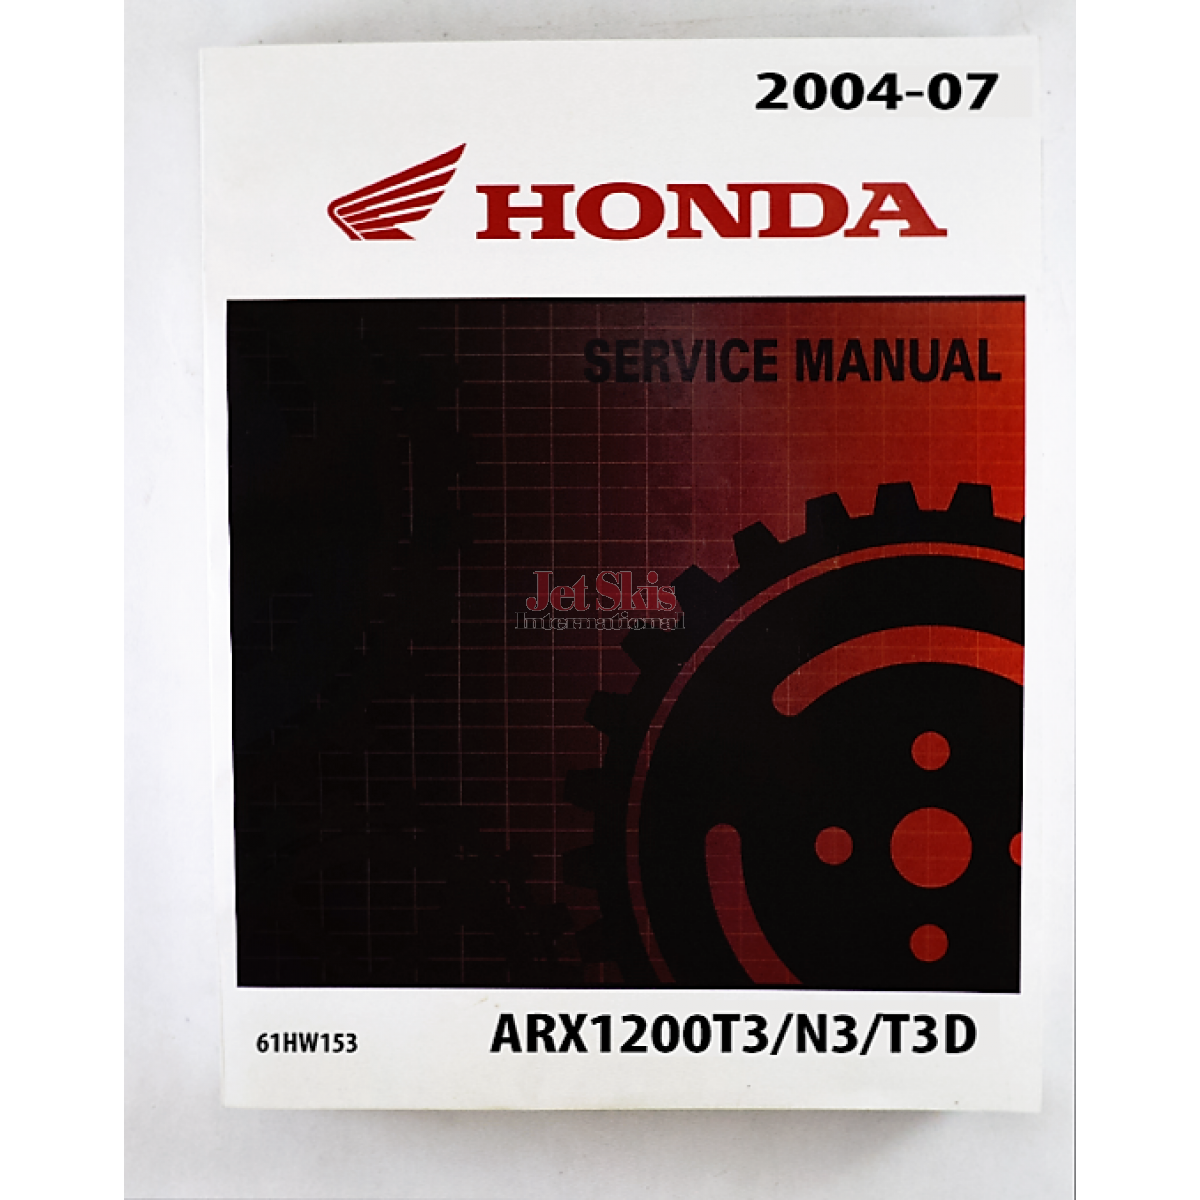 honda aquatrax f12 f12x service and shop manual 61hw101 jet skis rh jetskisint com 2006 Aquatrax 2006 Aquatrax